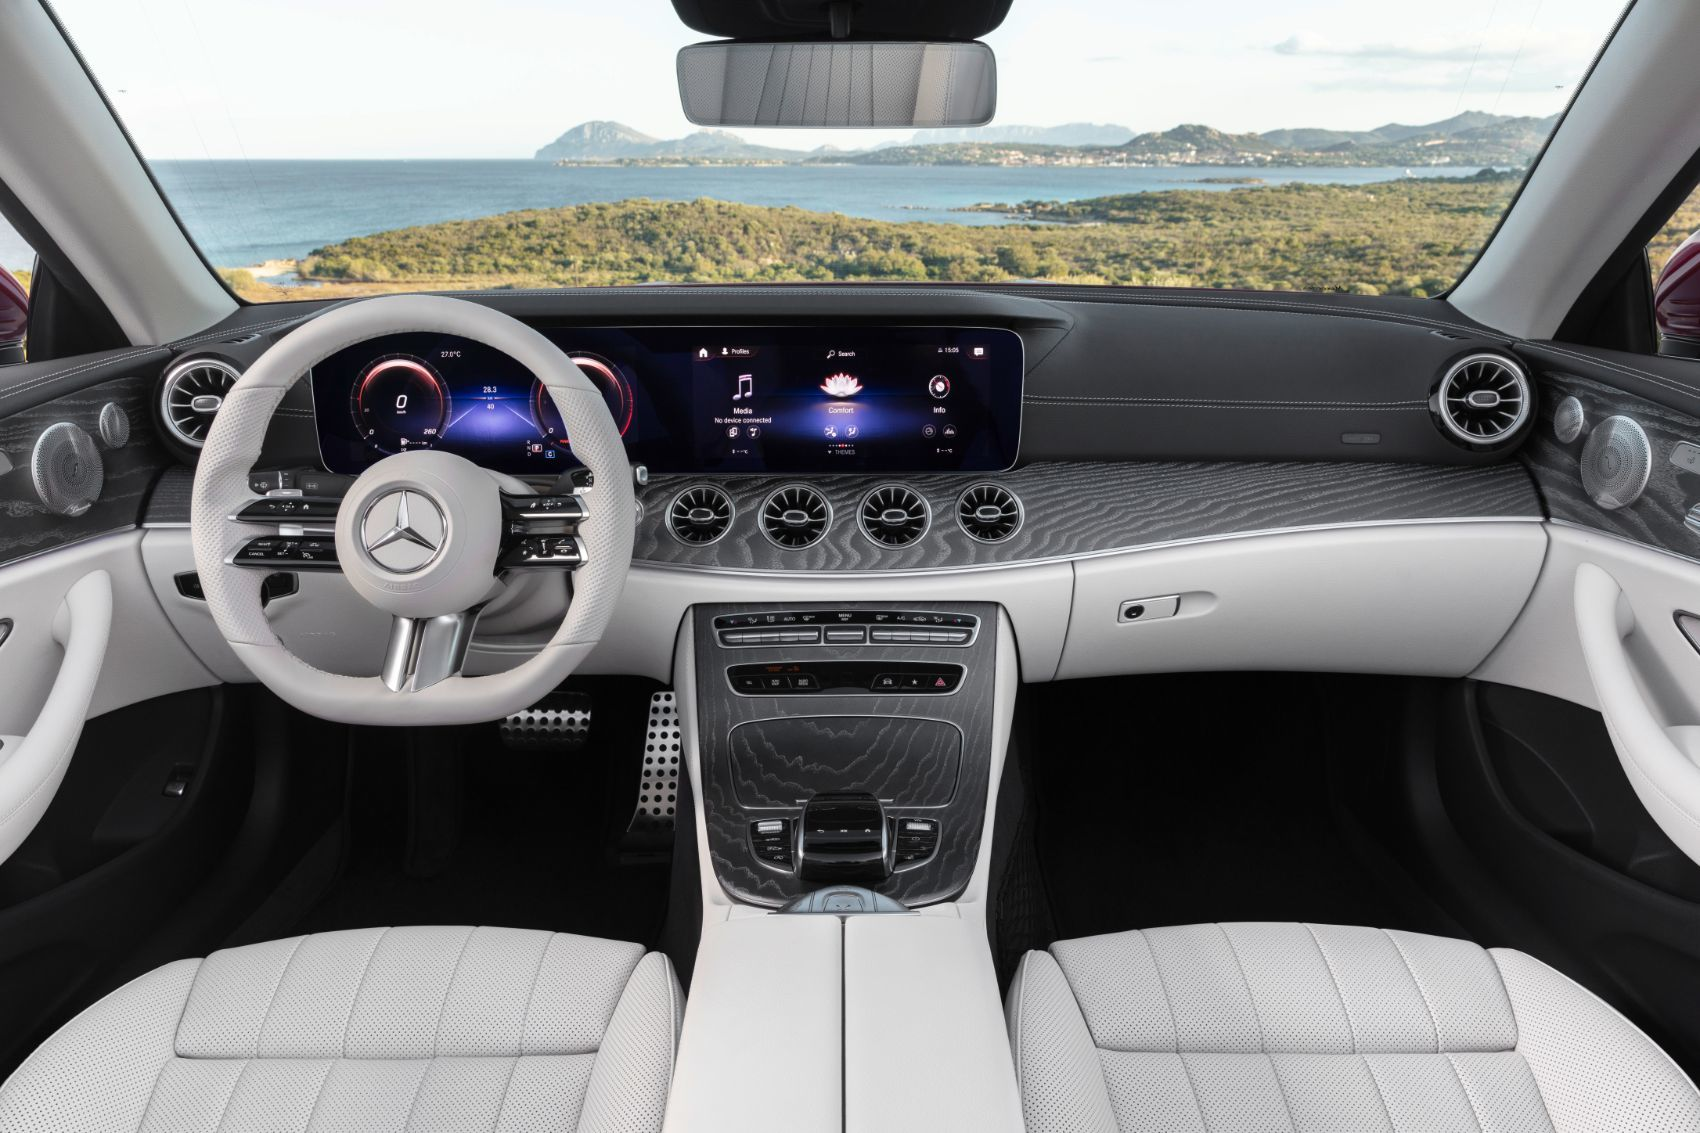 2021 mercedes-benz e 450 cabriolet: this jack of all